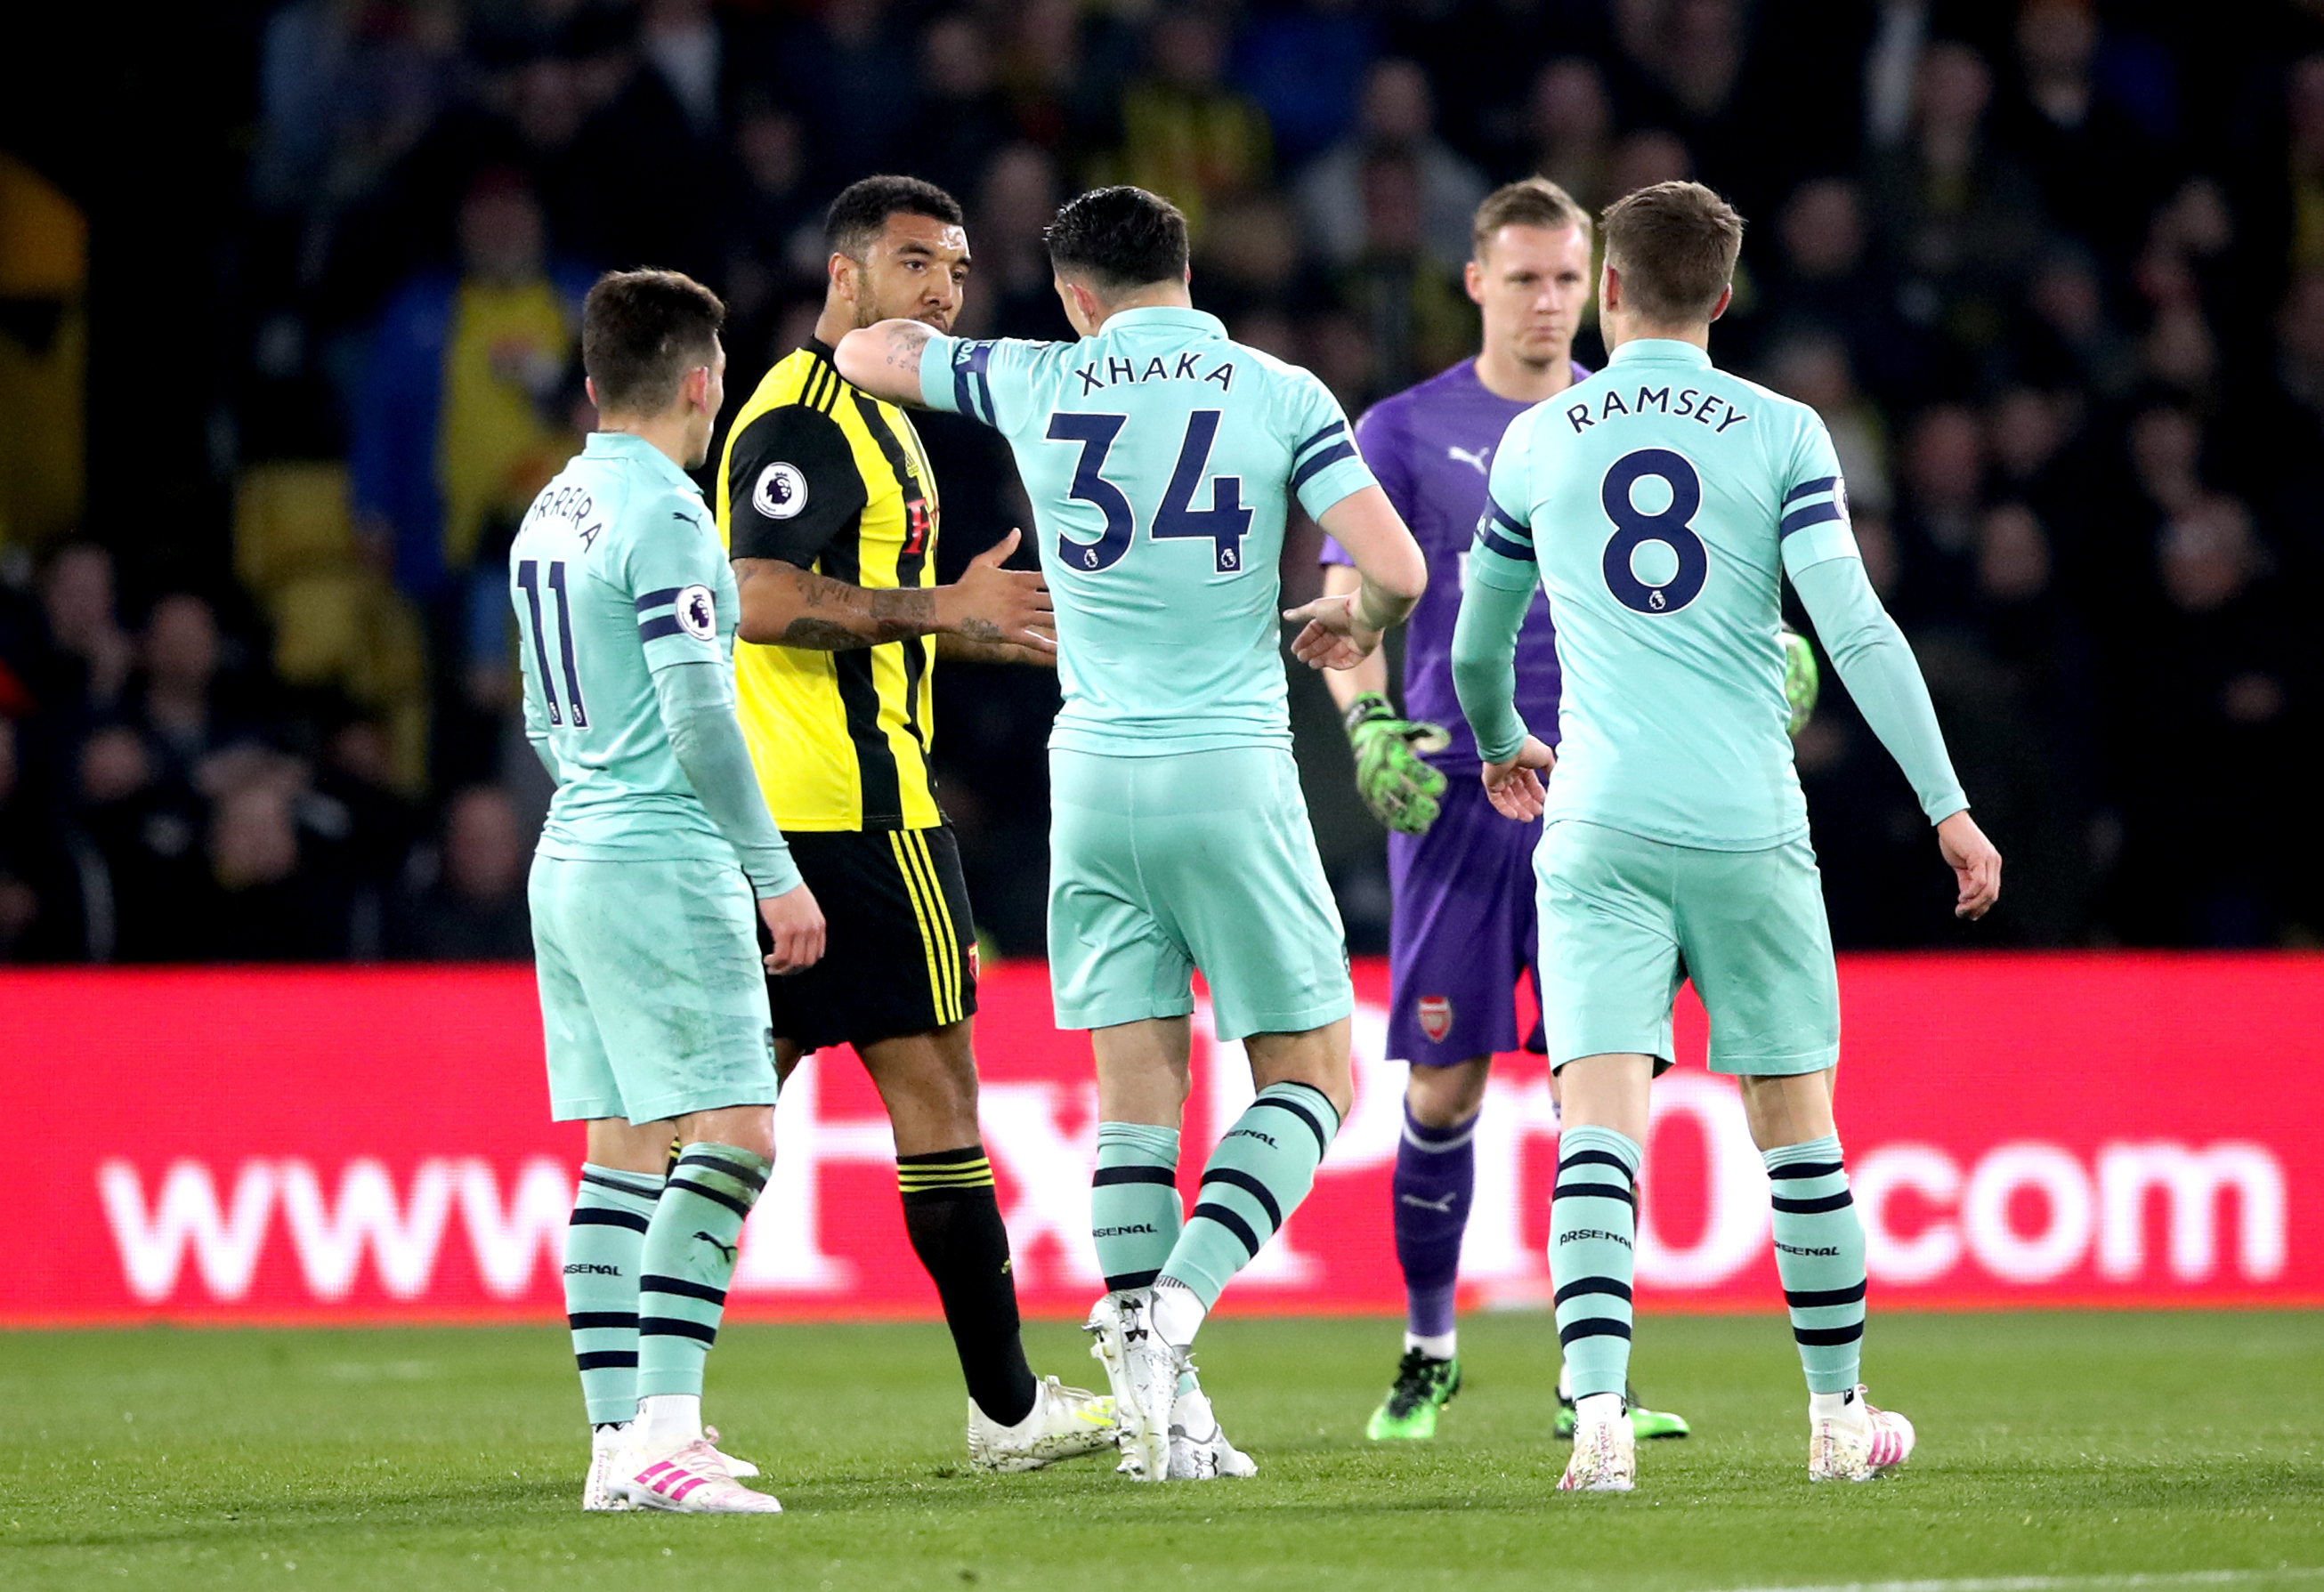 Xhaka explains to Deeney why he's been sent off, as if he didn't know. Image: PA Images